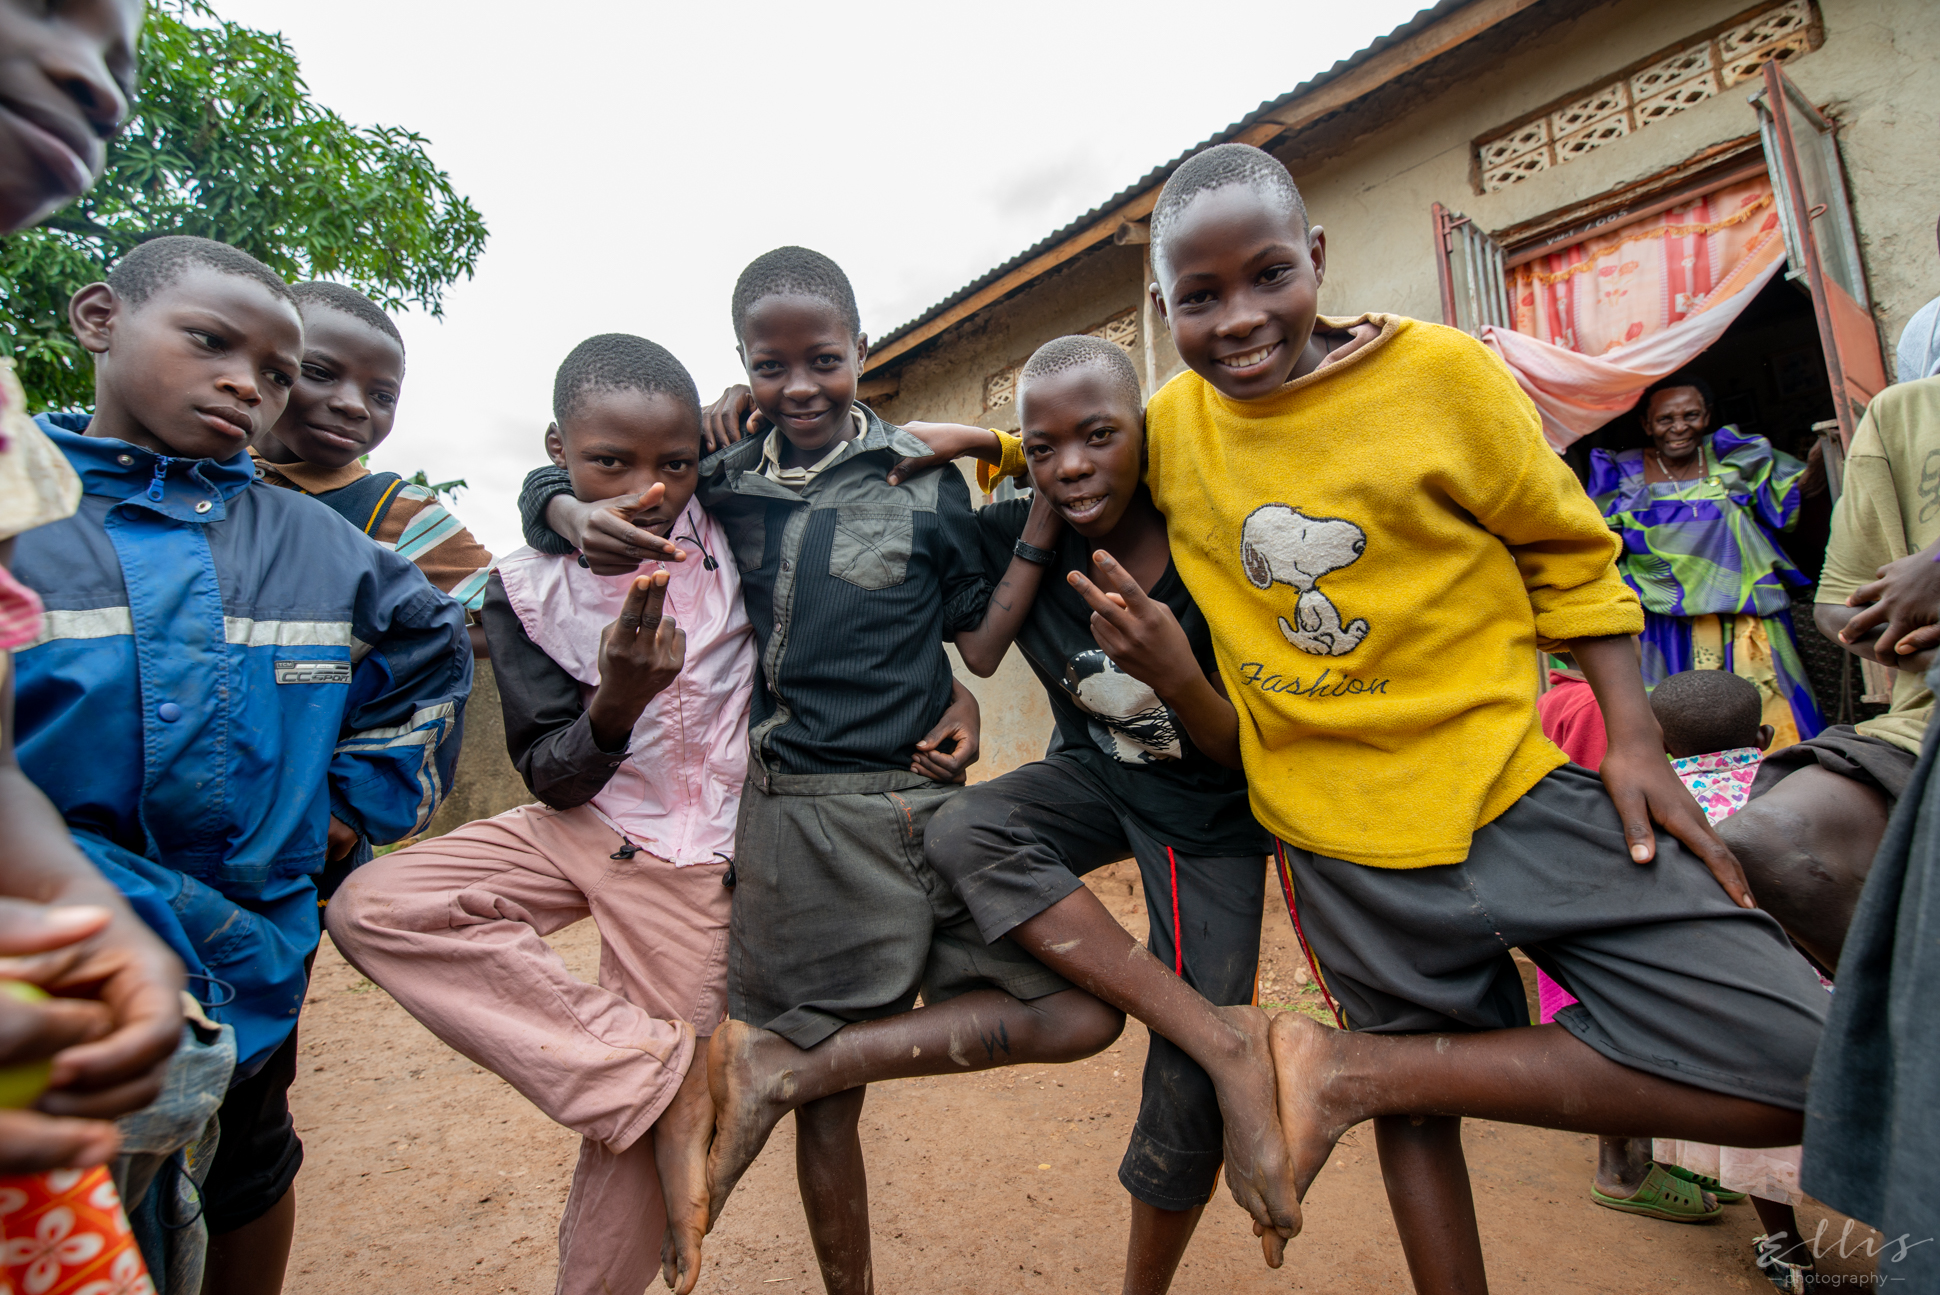 kids in Uganda smiling for the photograph. Great grandma on the background smiling.